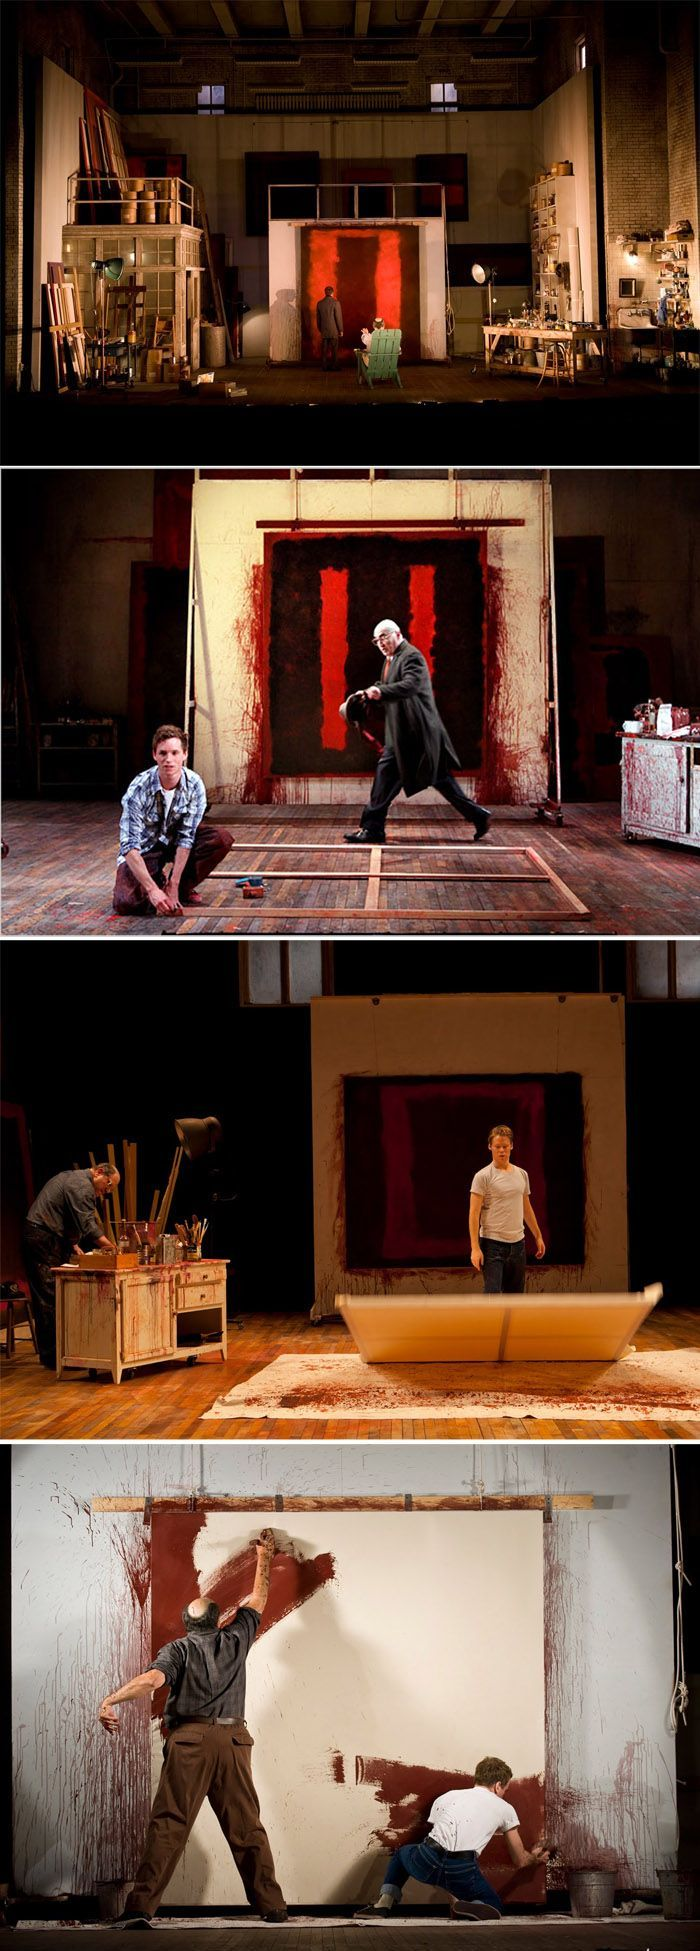 """""""Red is a play by American writer John Logan about artist Mark Rothko....The original production was directed by Michael Grandage and performed by Alfred Molina as Rothko and Eddie Redmayne as his fictional assistant Ken..."""